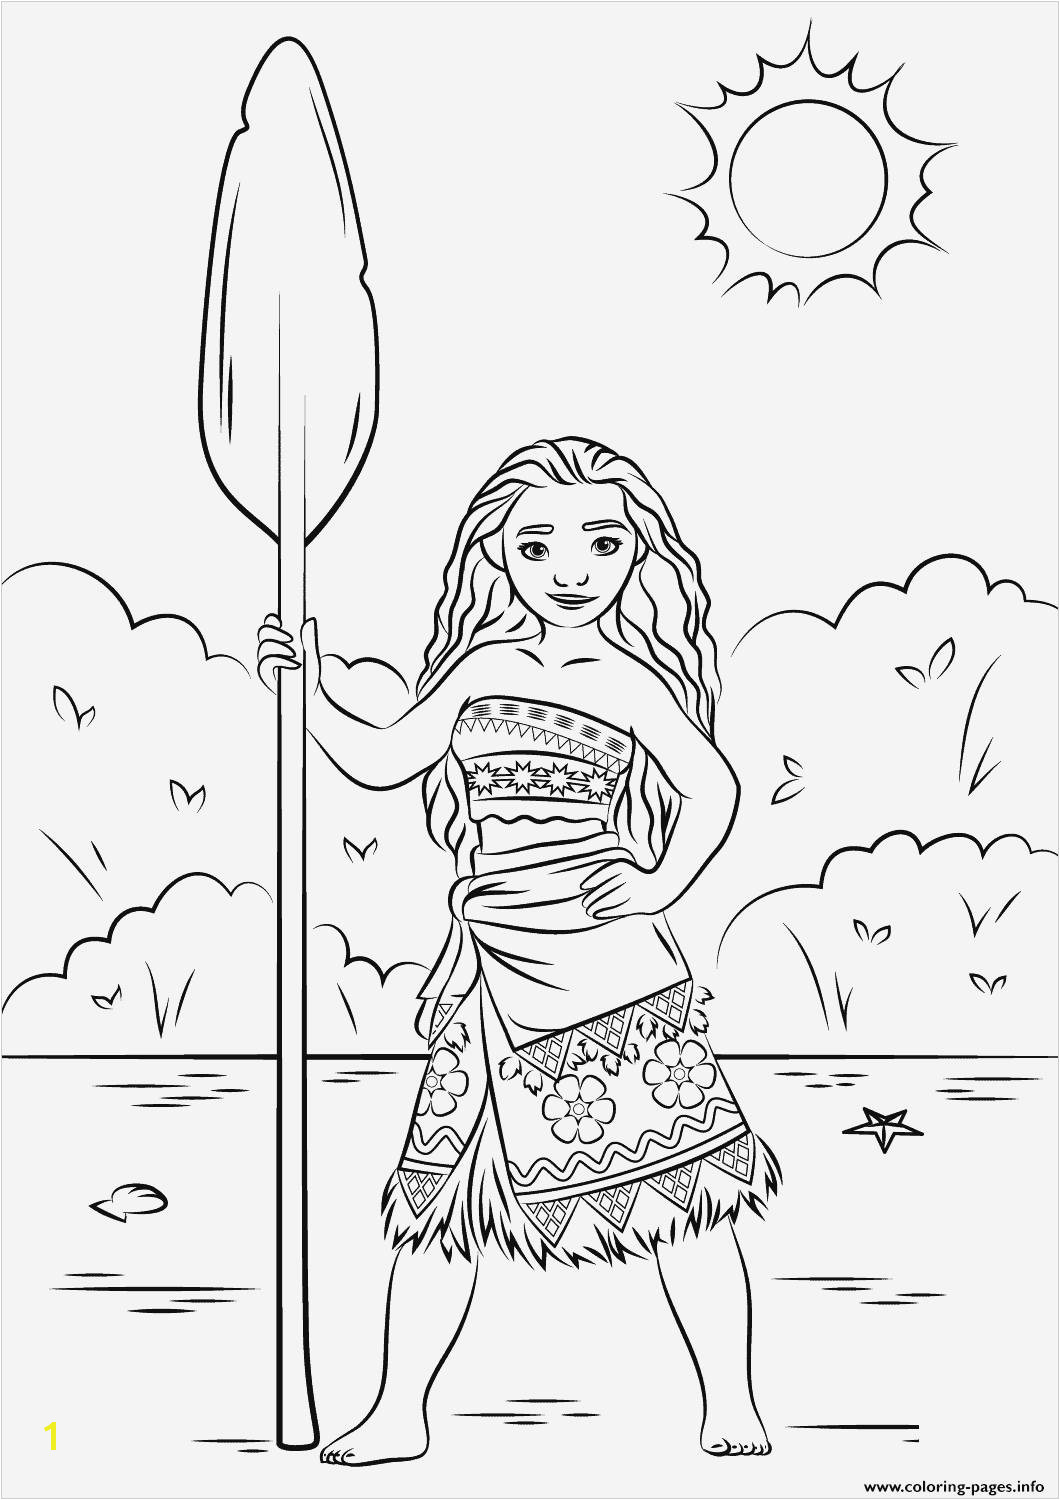 Home Coloring Pages Best Color Sheet 0d Modokom Fun Time Free 9